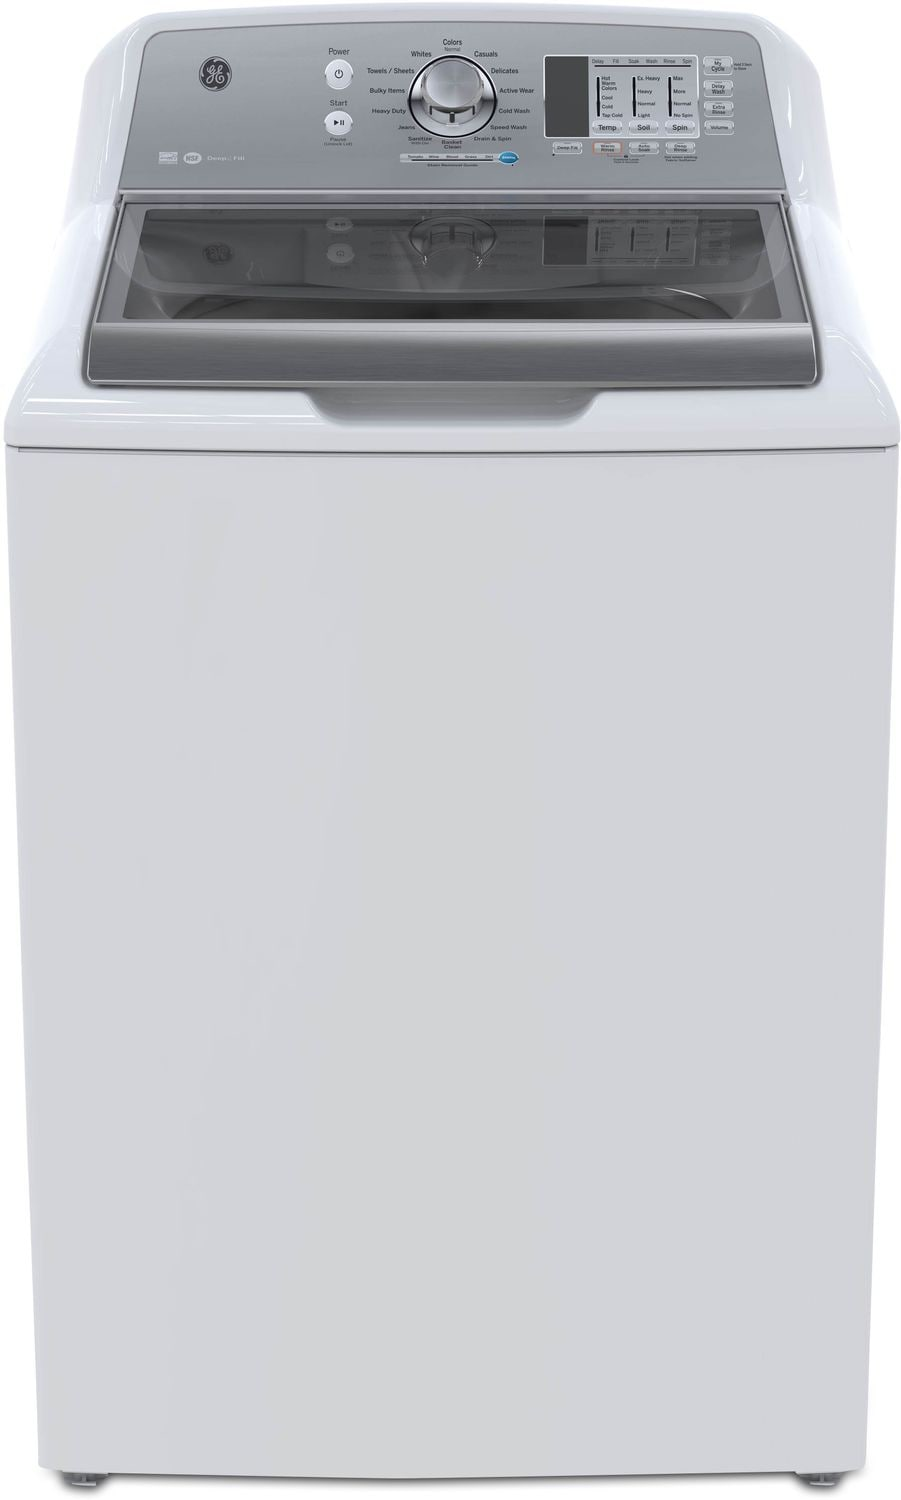 GE 5.3 Cu. Ft. Top-Load Washer – GTW680BMKWS